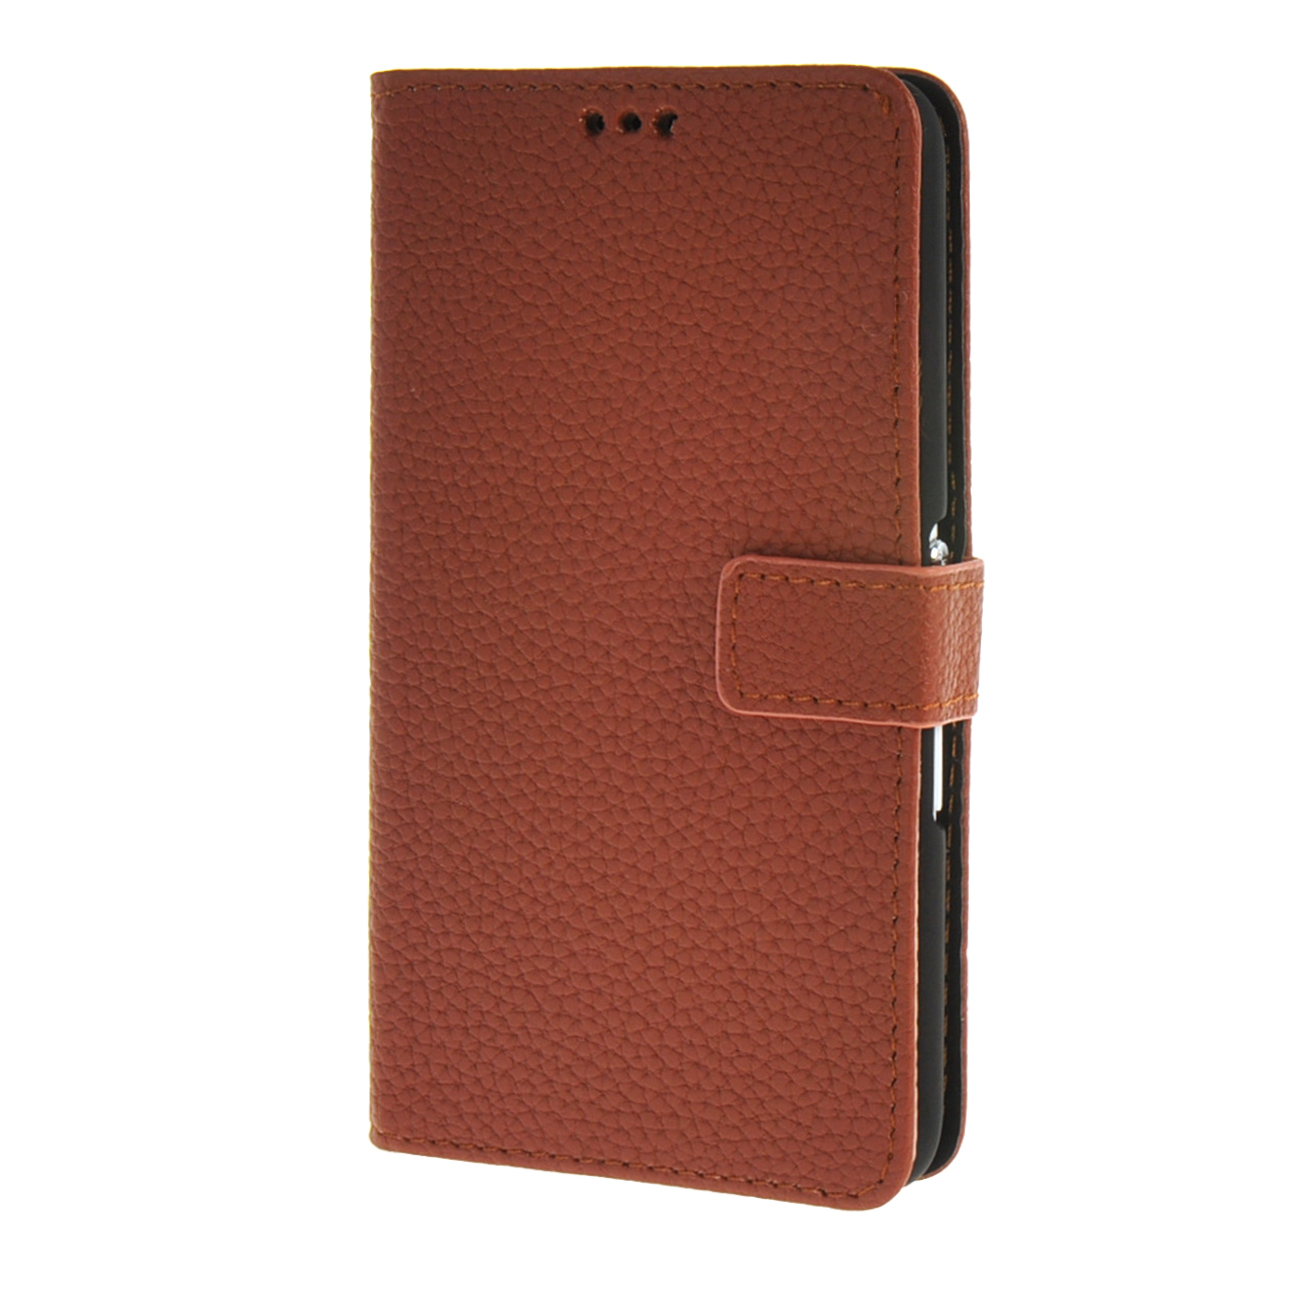 MOONCASE mooncase чехол для sony xperia m4 aqua wallet card slot with kickstand flip leather back brown